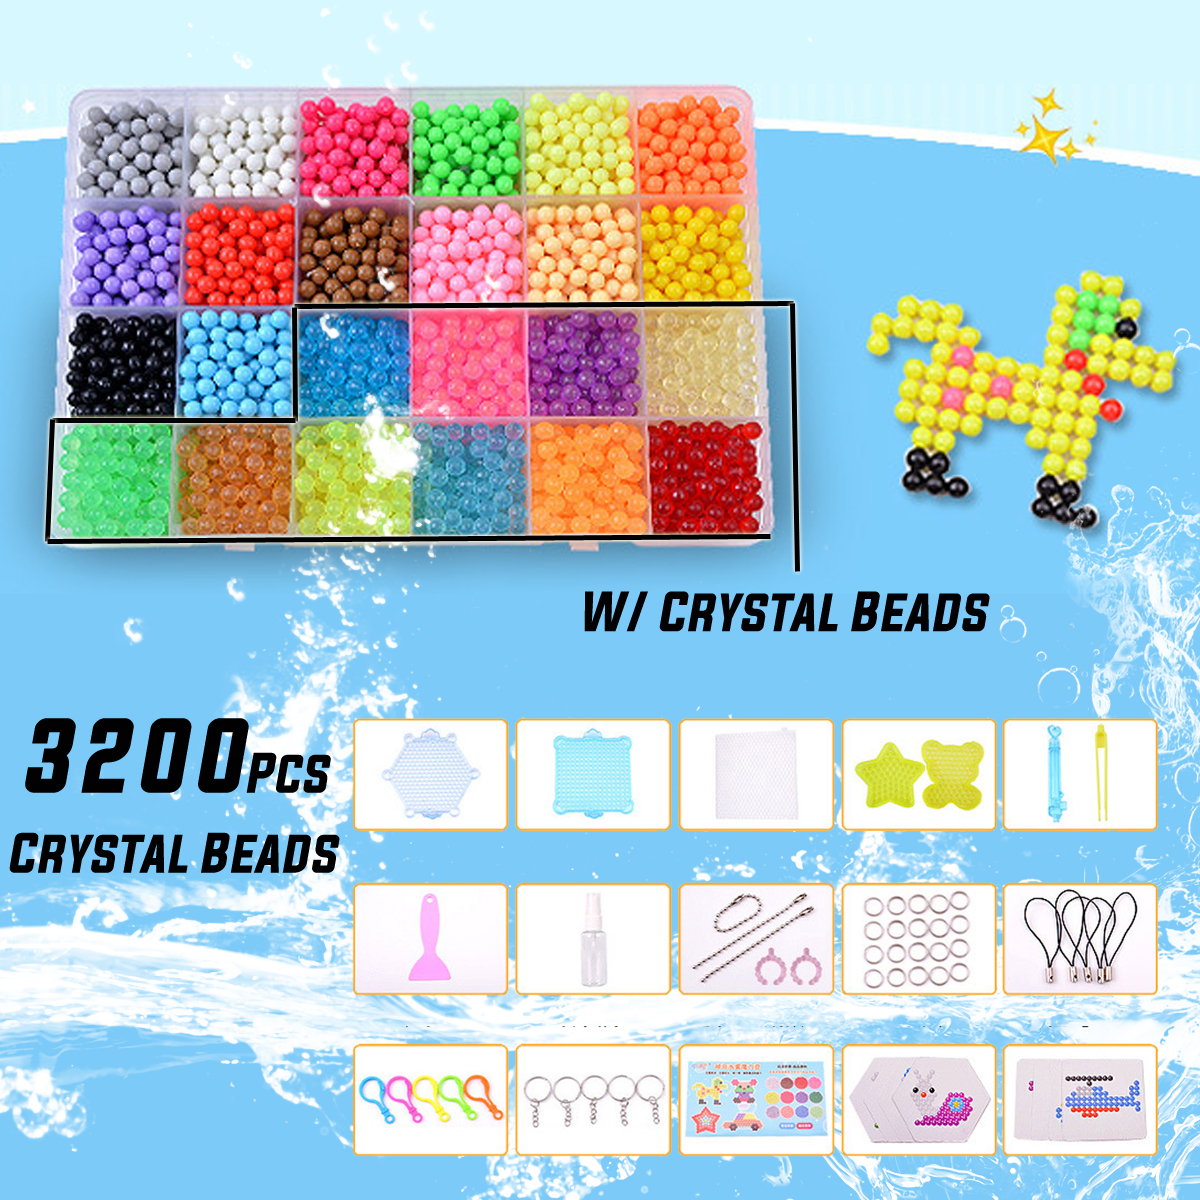 24 Color 3200pcs box set of for Hama Beads for Children Educational jigsaw puzzle DIY Toys Fuse Beads Pegboard(China)